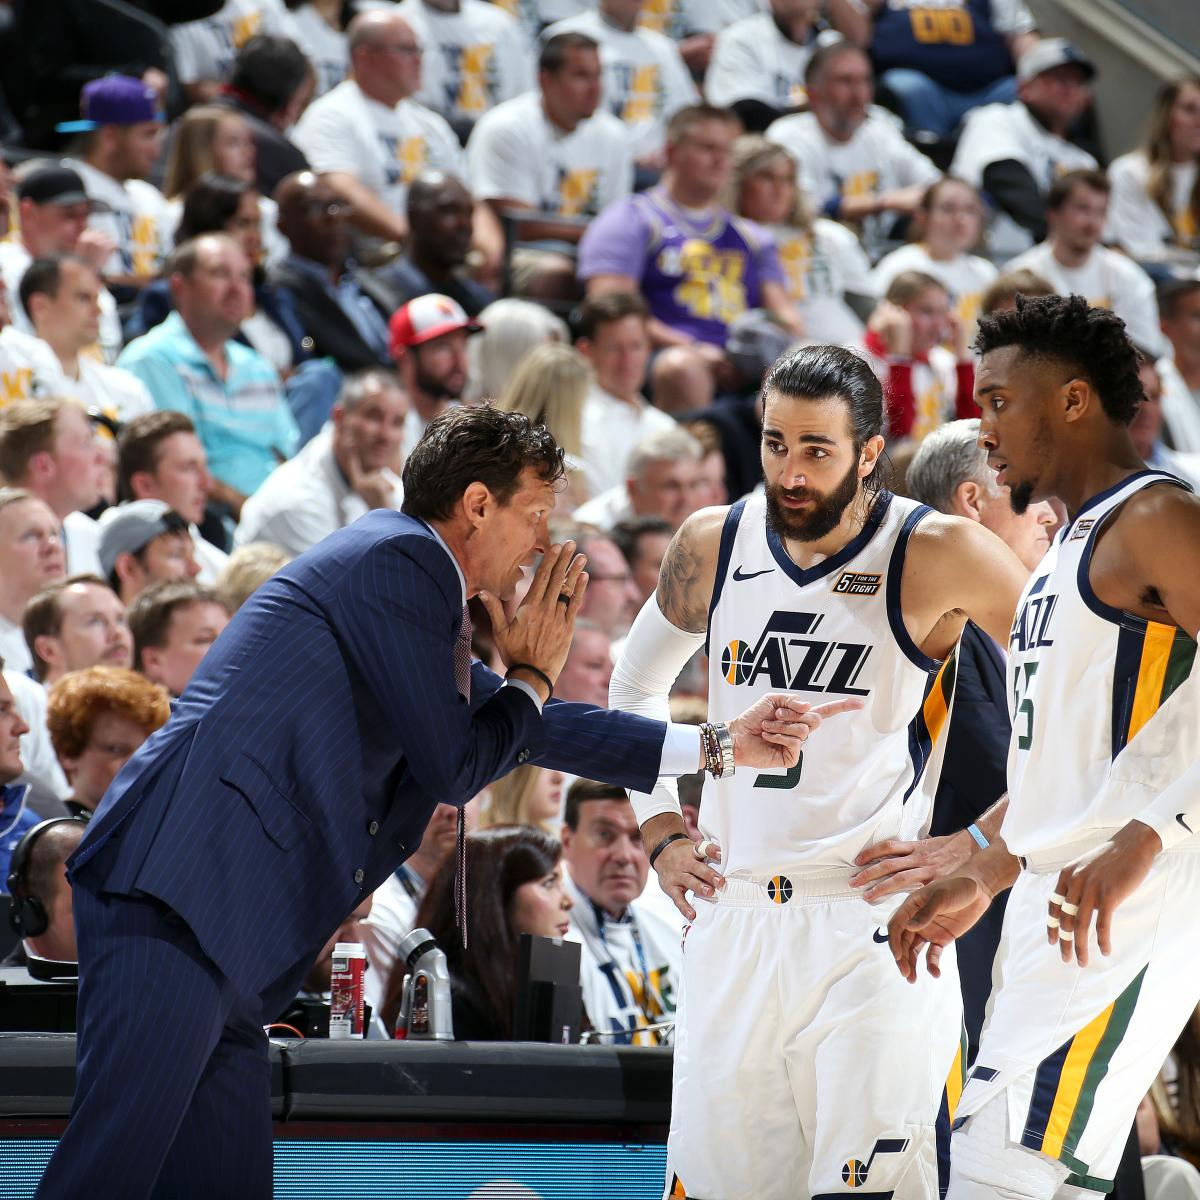 No NBA team has ever come back from a 3-0 deficit to win a playoff series, but the Utah Jazz took the first step with a 107-91 victory over the Houston Rockets in Monday's Game 4 at Vivint Smart Home Arena...